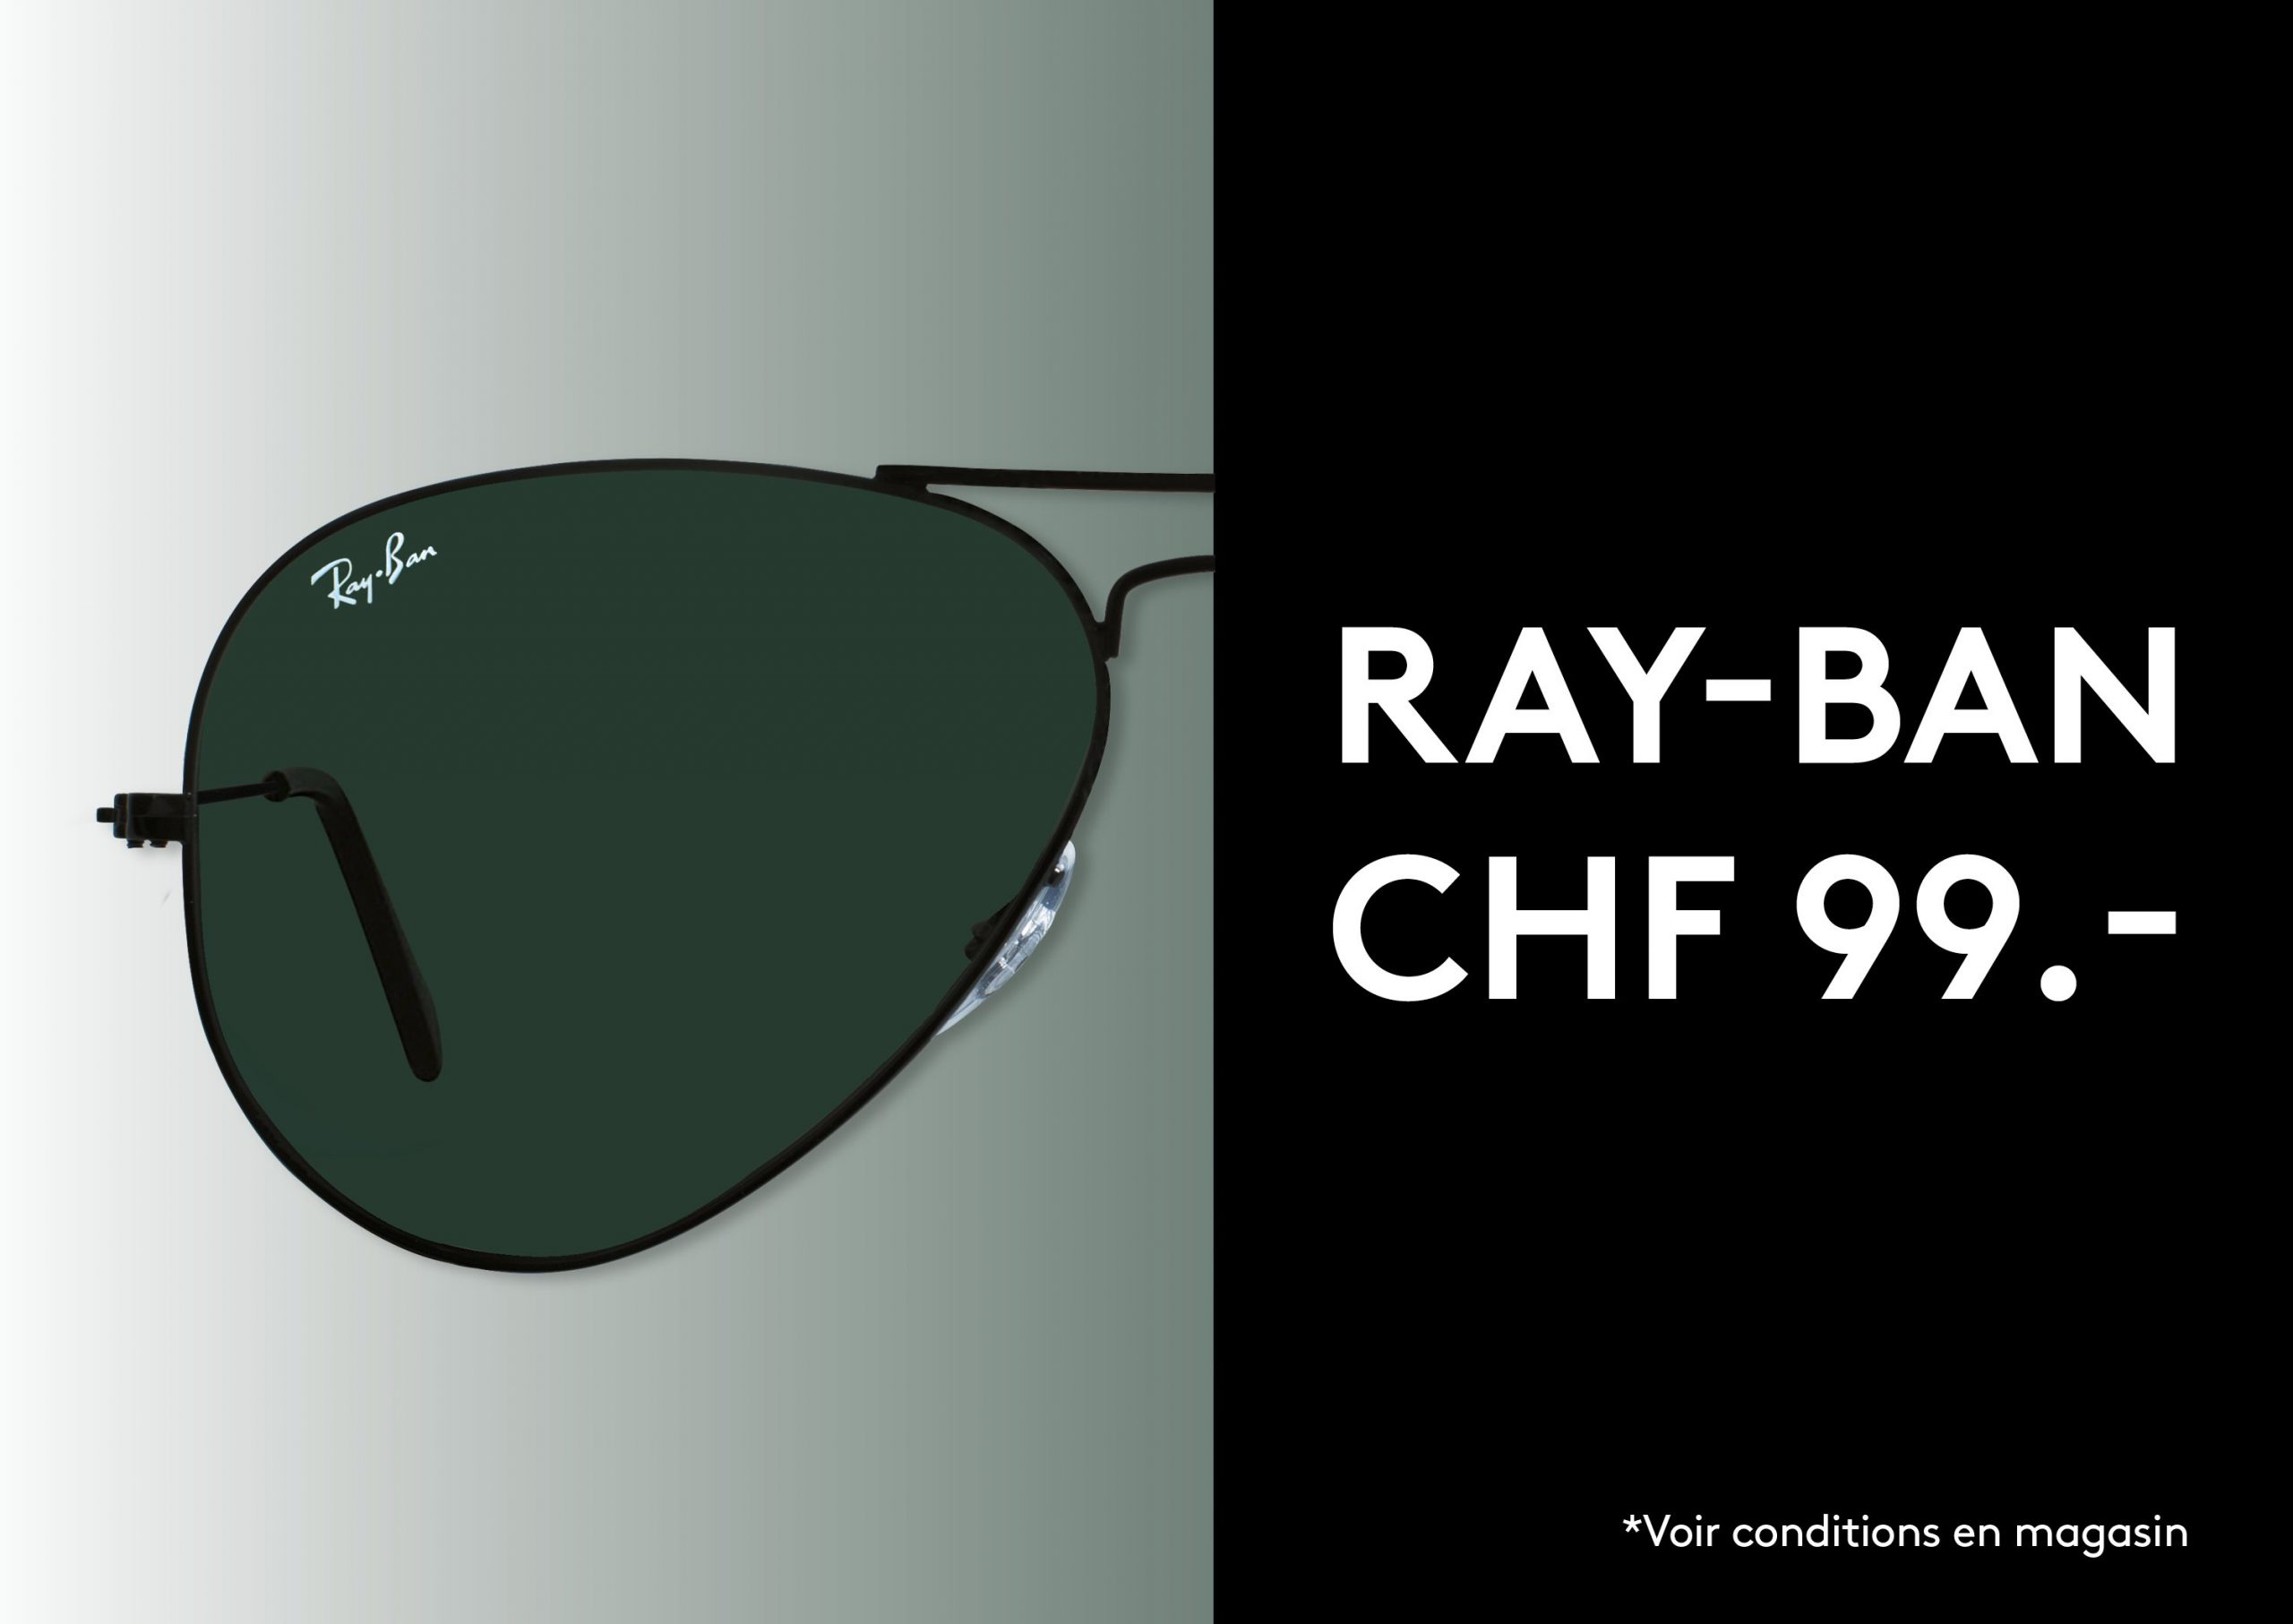 Optic-2000-offre-ray-ban-99CHF